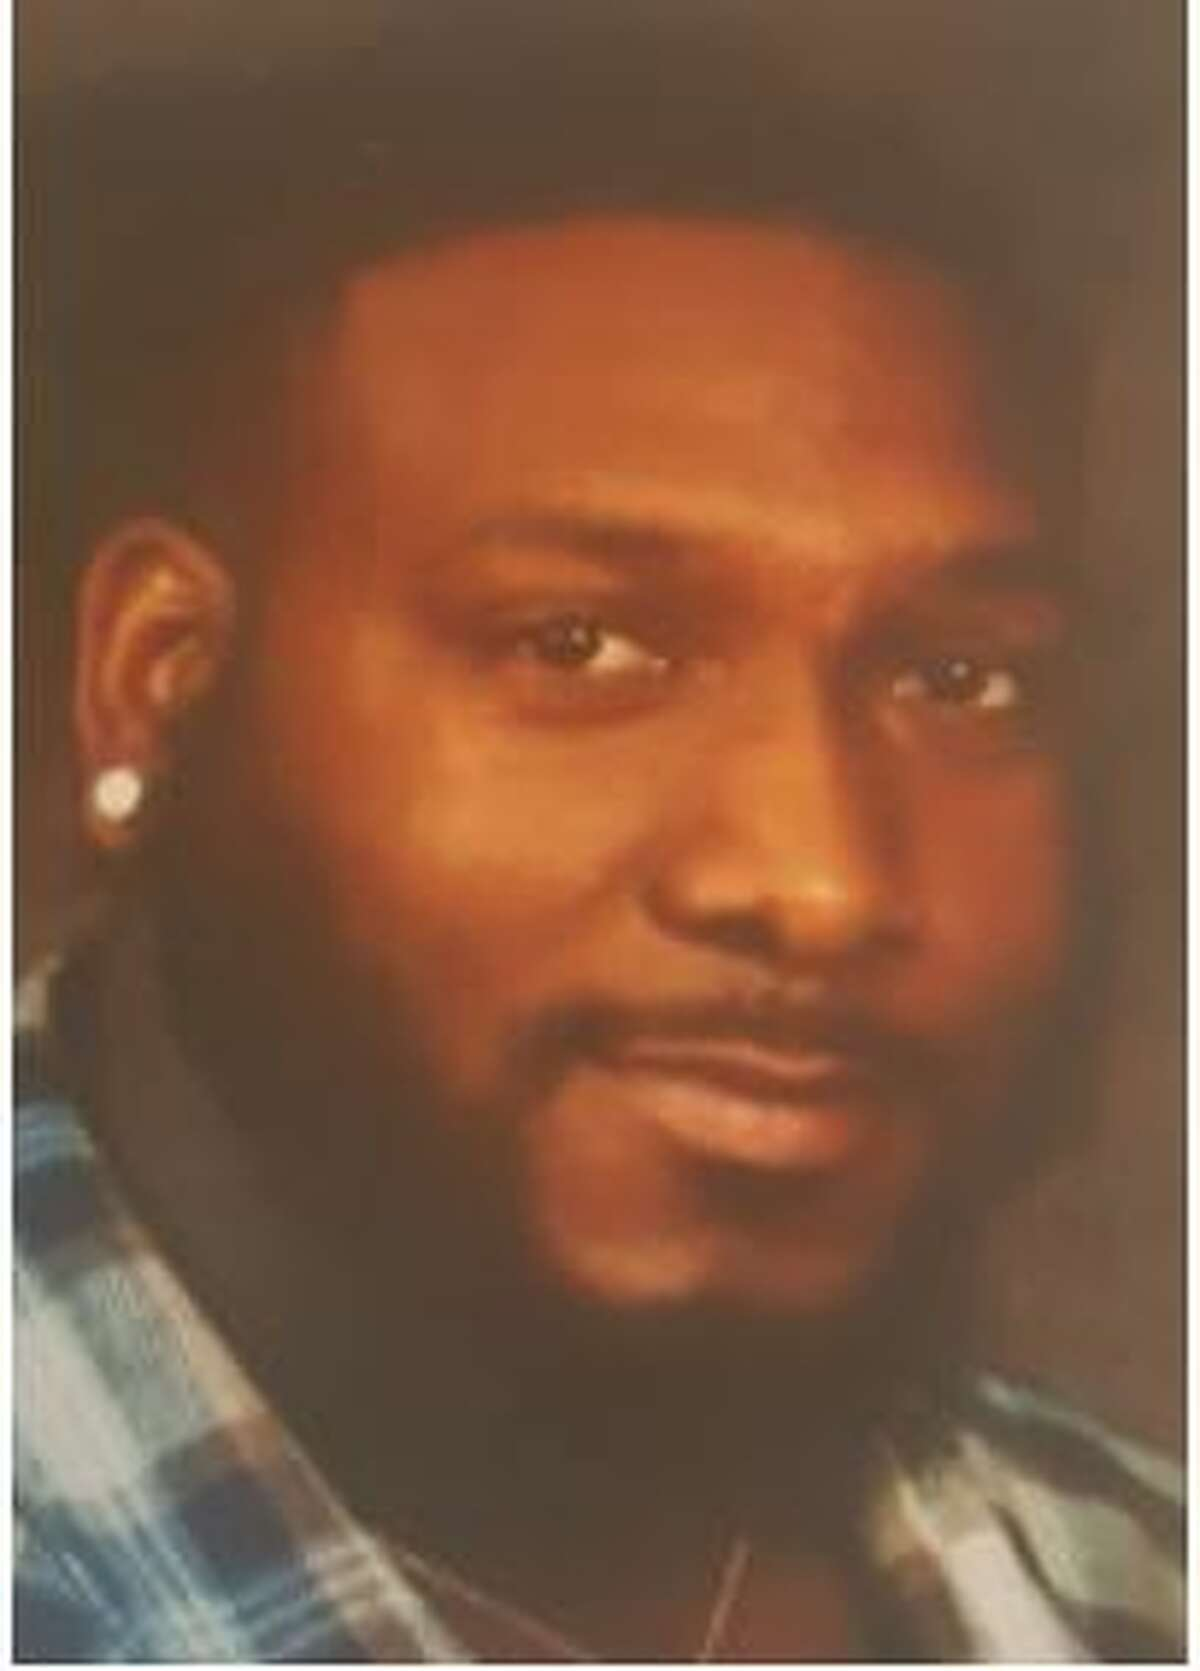 Frederick Kennedy was found shot to death Aug. 2, 2018 at an apartment complex located in the 5700 block of Greenhouse Road. Three black male suspects were seen fleeing the area, leaving in vehicles that are described as a gray Lincoln MKG or MKZ and a dark GMC or Chevrolet truck.